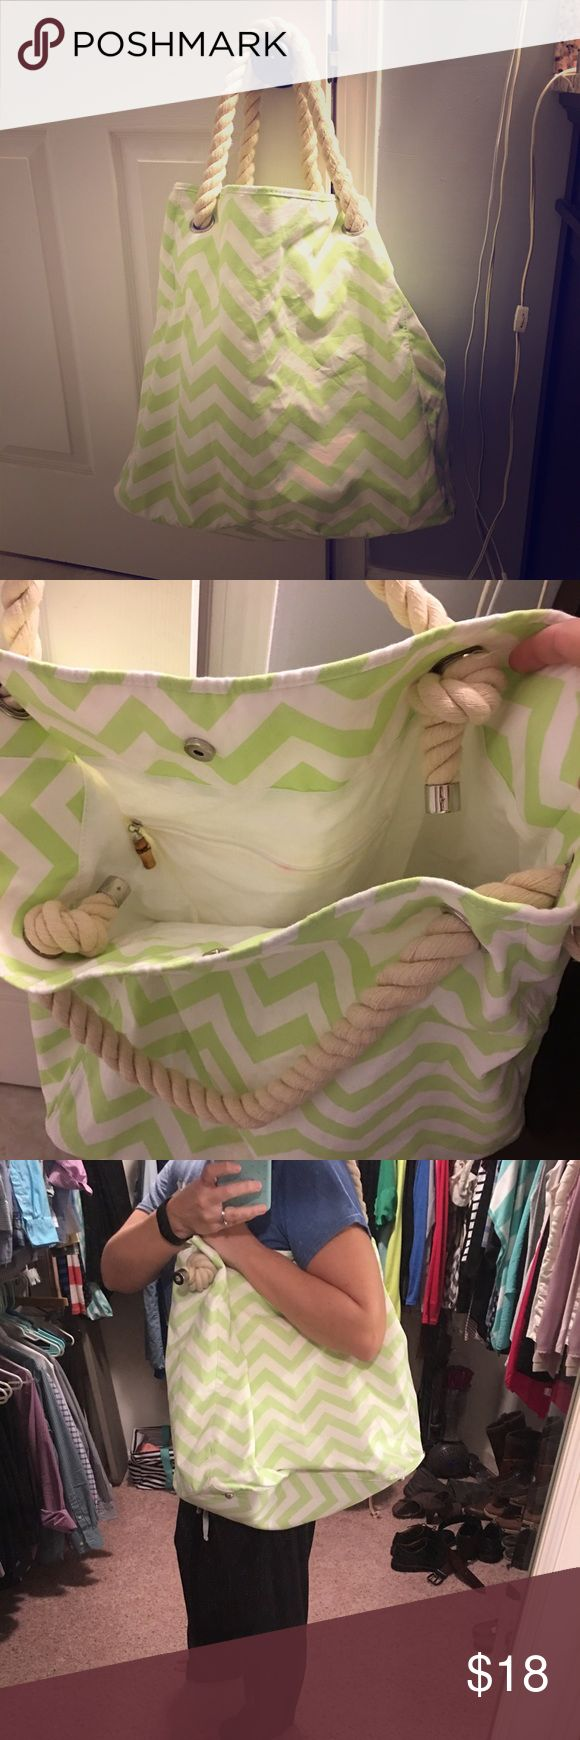 Oversized beach bag or tote Lime green and white chevron with rope straps. There is one zipper pocket inside and a couple other pockets that don't zip. Perfect for lugging beach towels or toys to the pool. Like new condition. There is one tiny pink spot on the inside zipper. Bags Totes